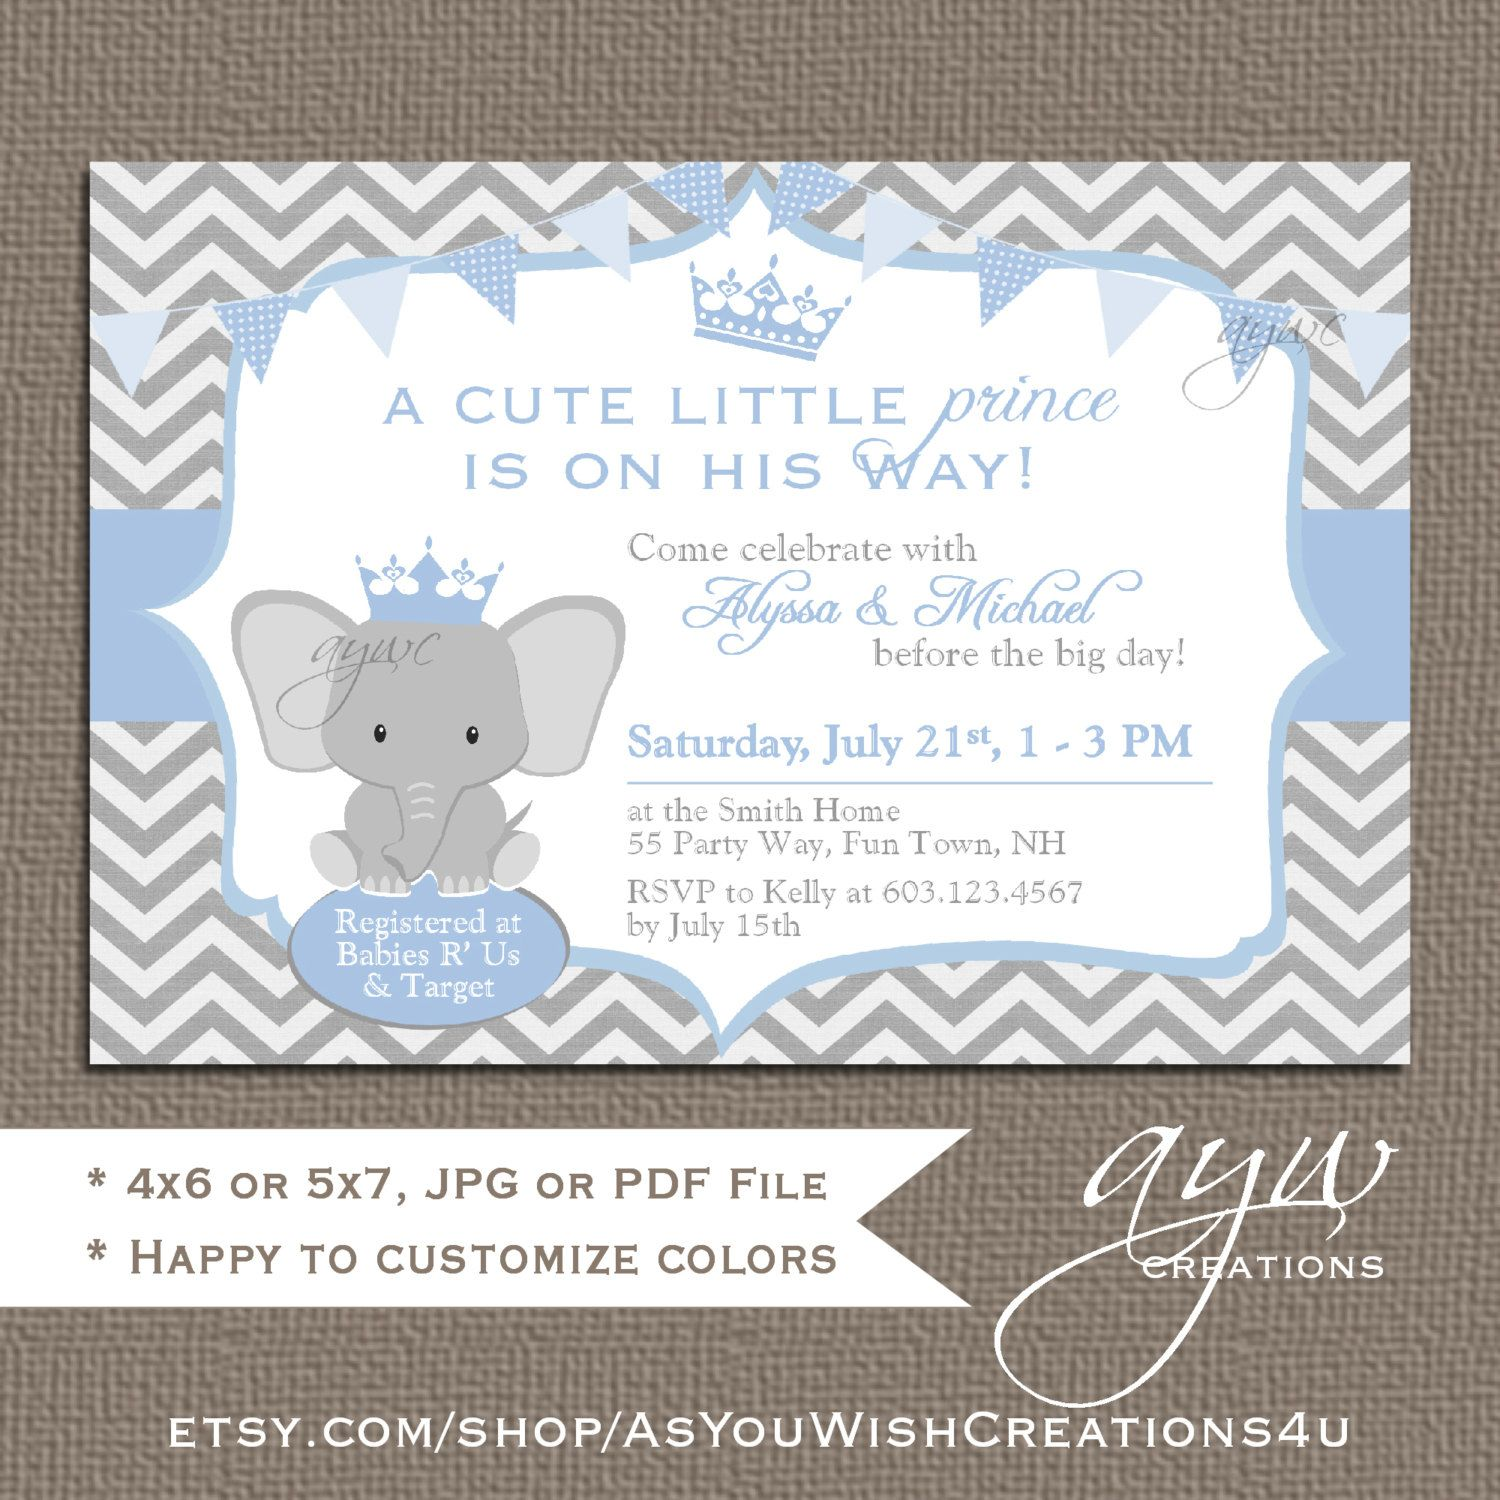 Full Size of Baby Shower:inspirational Elephant Baby Shower Invitations Photo Concepts Elephant Baby Shower Invitations Elephant Baby Shower Invitations Boys Elephant Baby Shower Elephant Baby Shower Invitations Boys Elephant Baby Shower